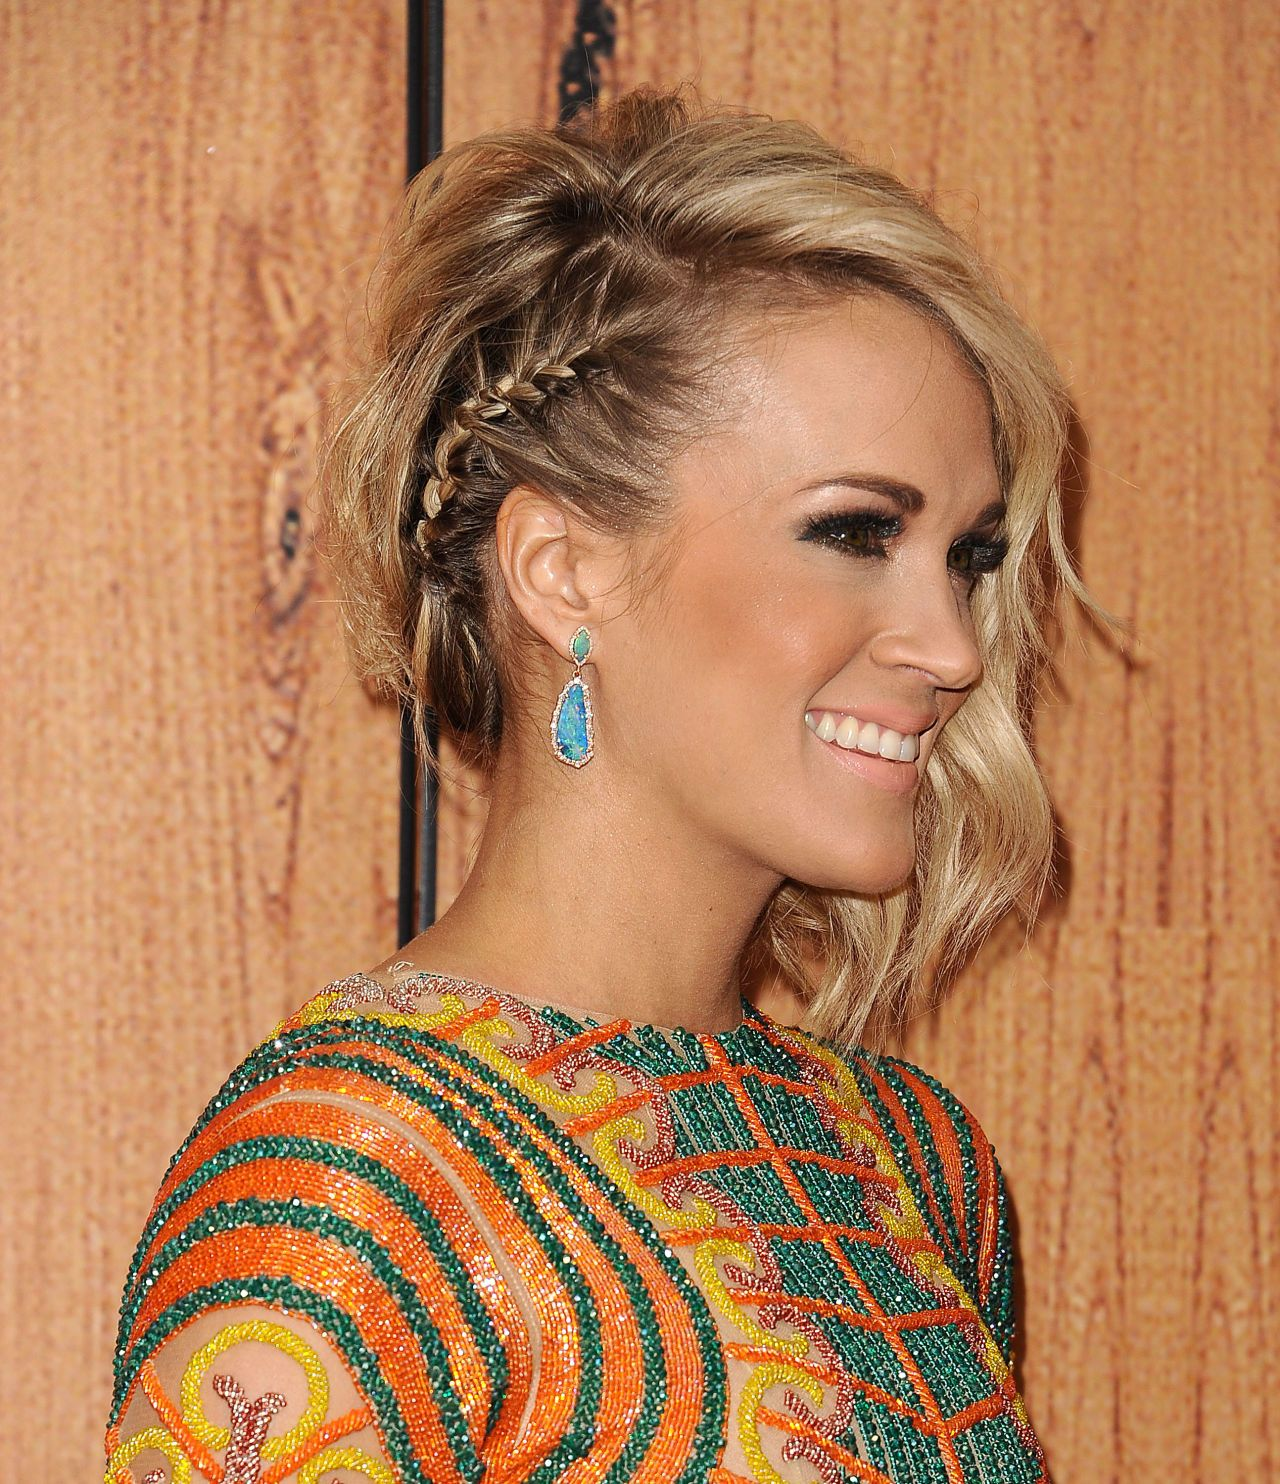 carrie underwood's hair is one of the top style of this